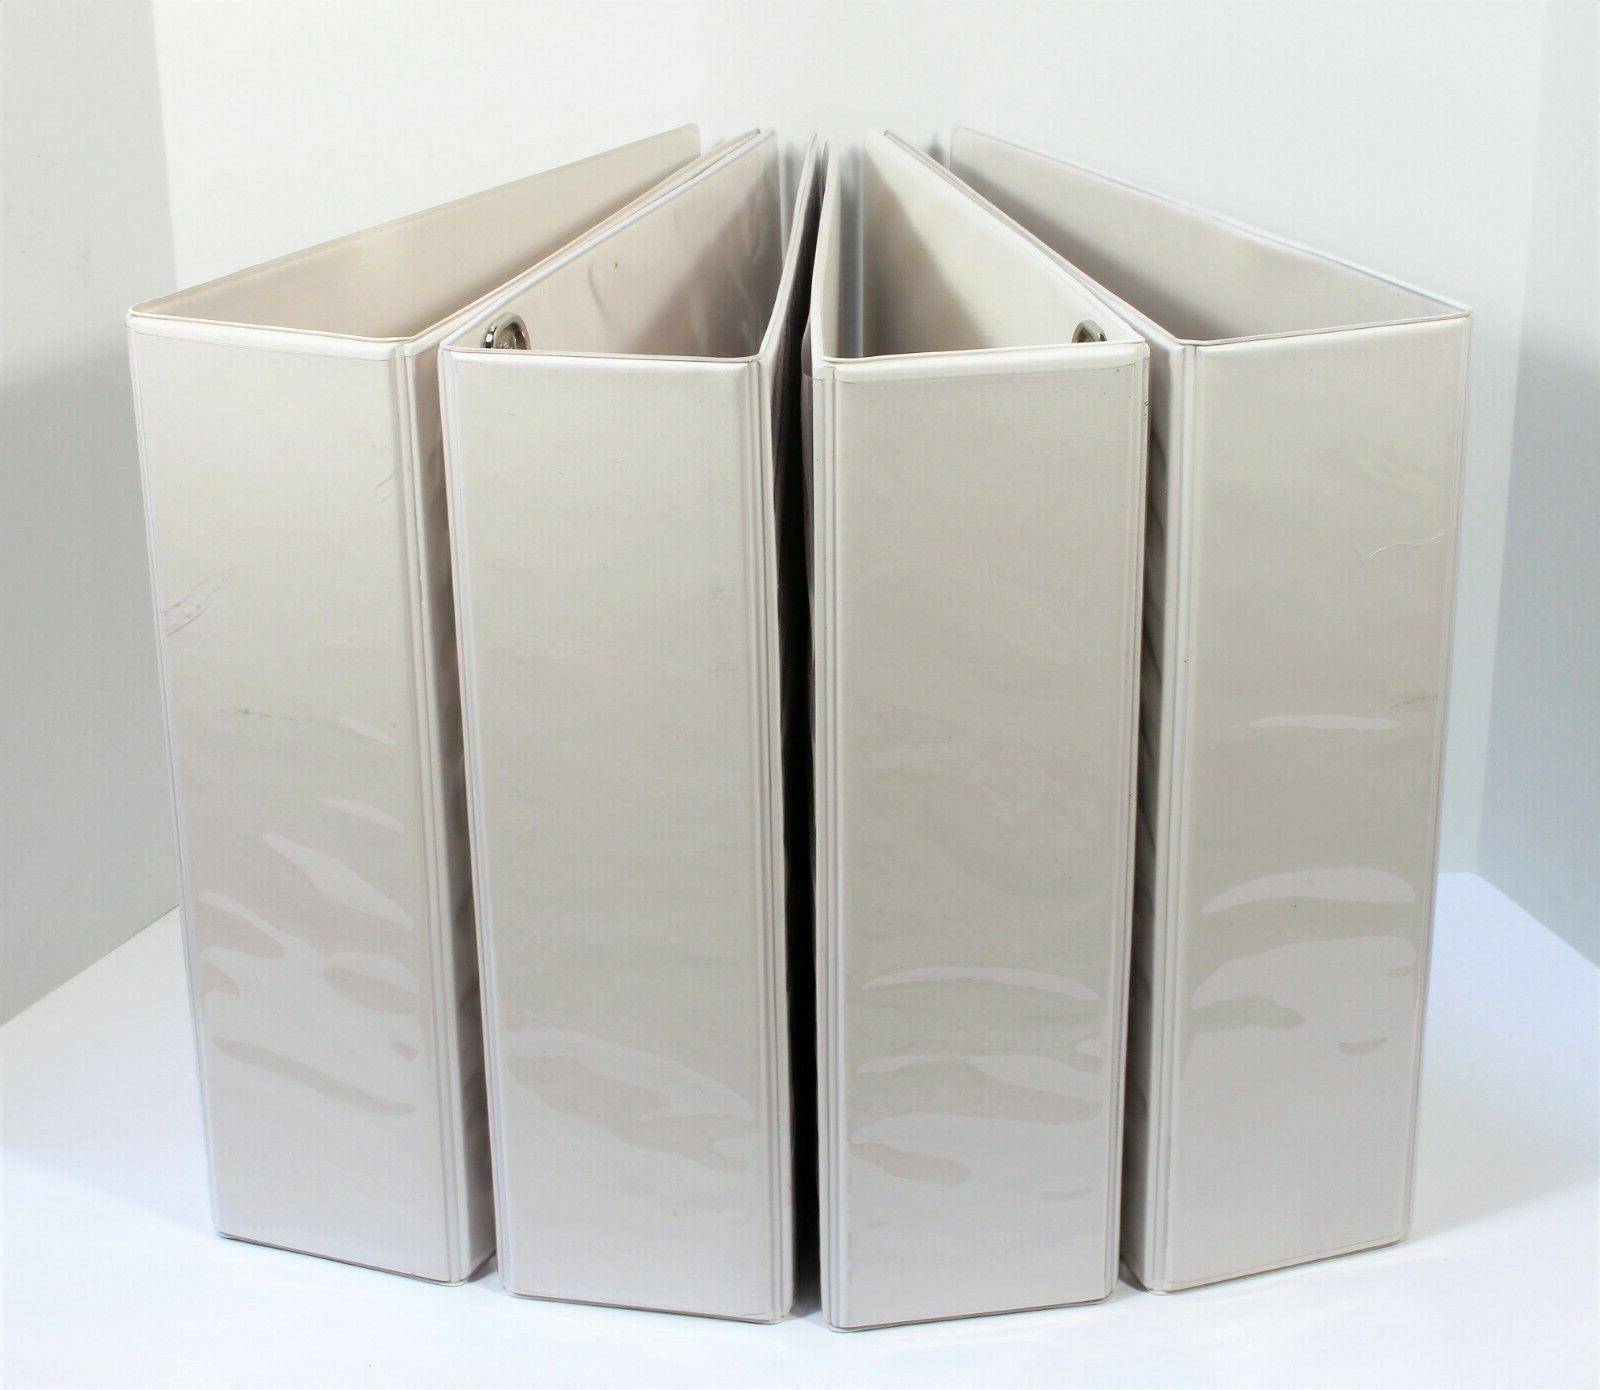 4 ring euro a4 size view binder